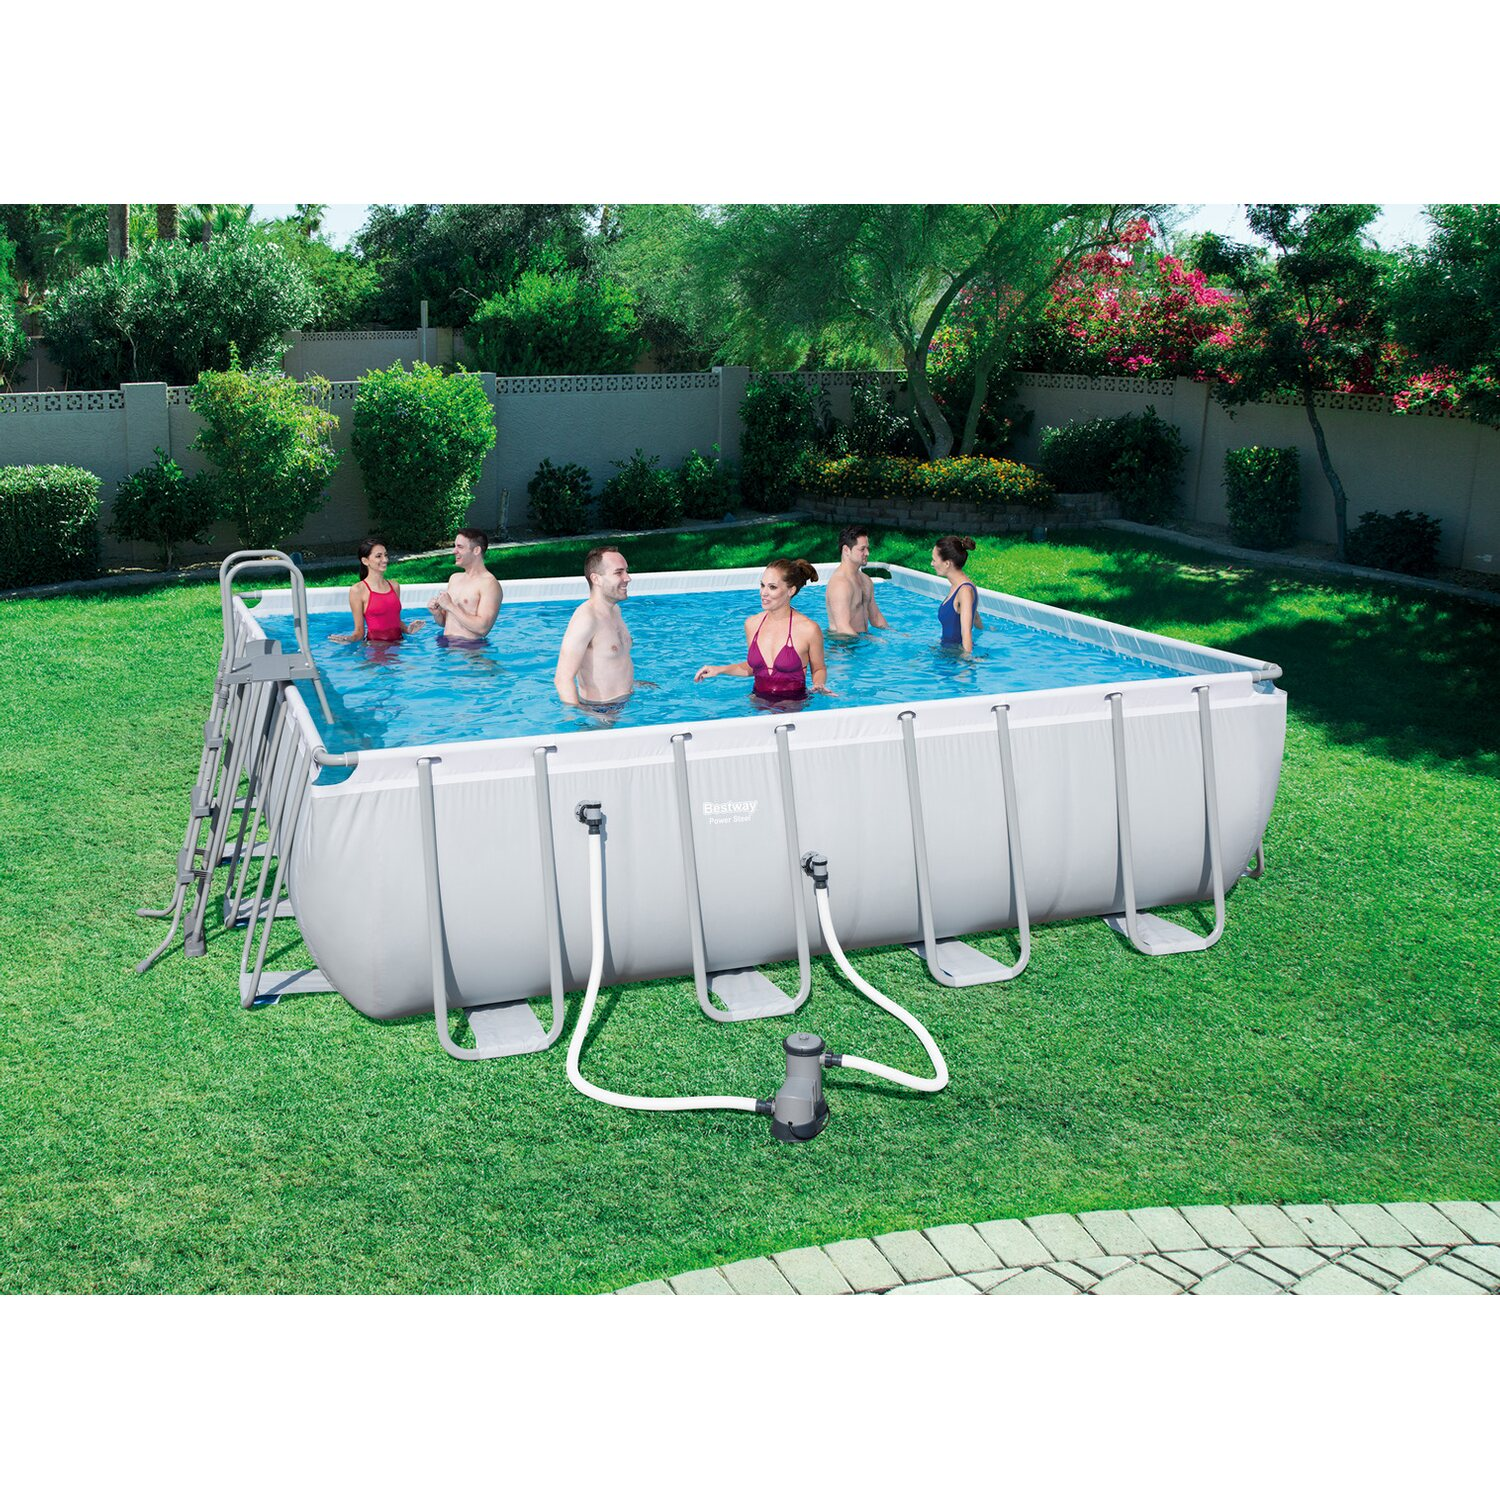 Bestway pool set power stahlrahmen 488 cm x 488 cm x 122 for Obi pool set